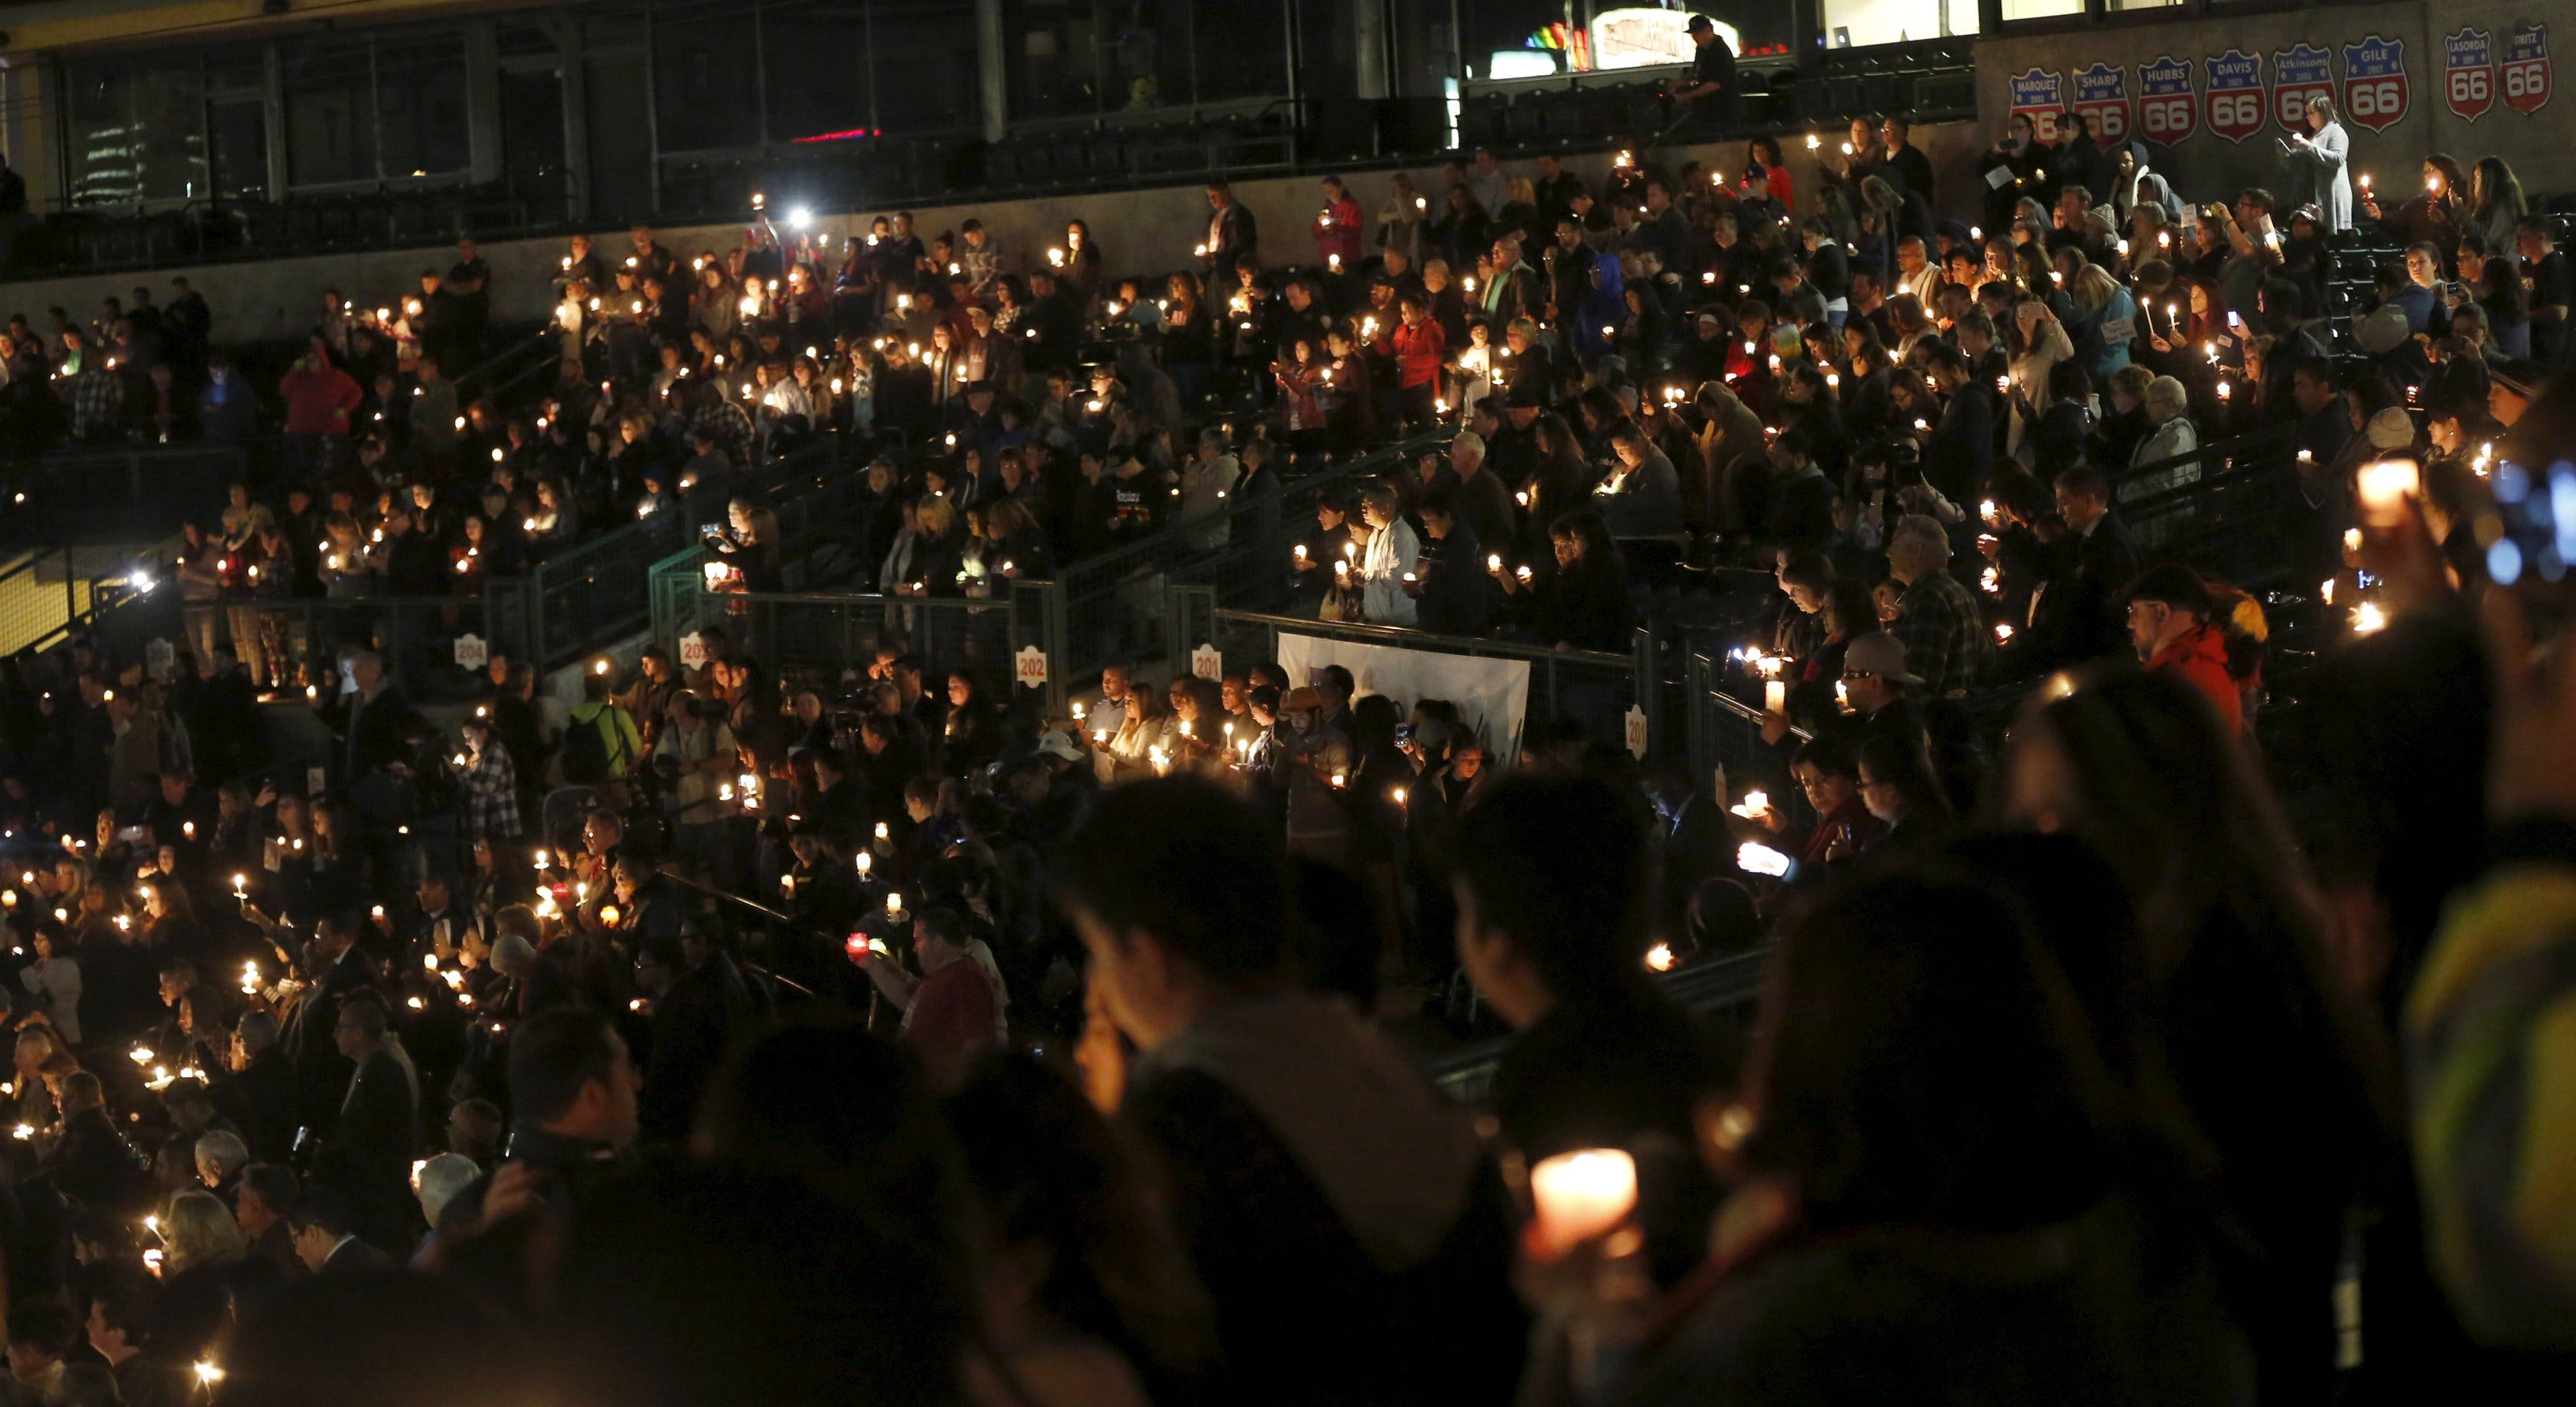 Attendees reflect on the tragedy of Wednesday's attack during a candlelight vigil in San Bernardino, California December 3, 2015.